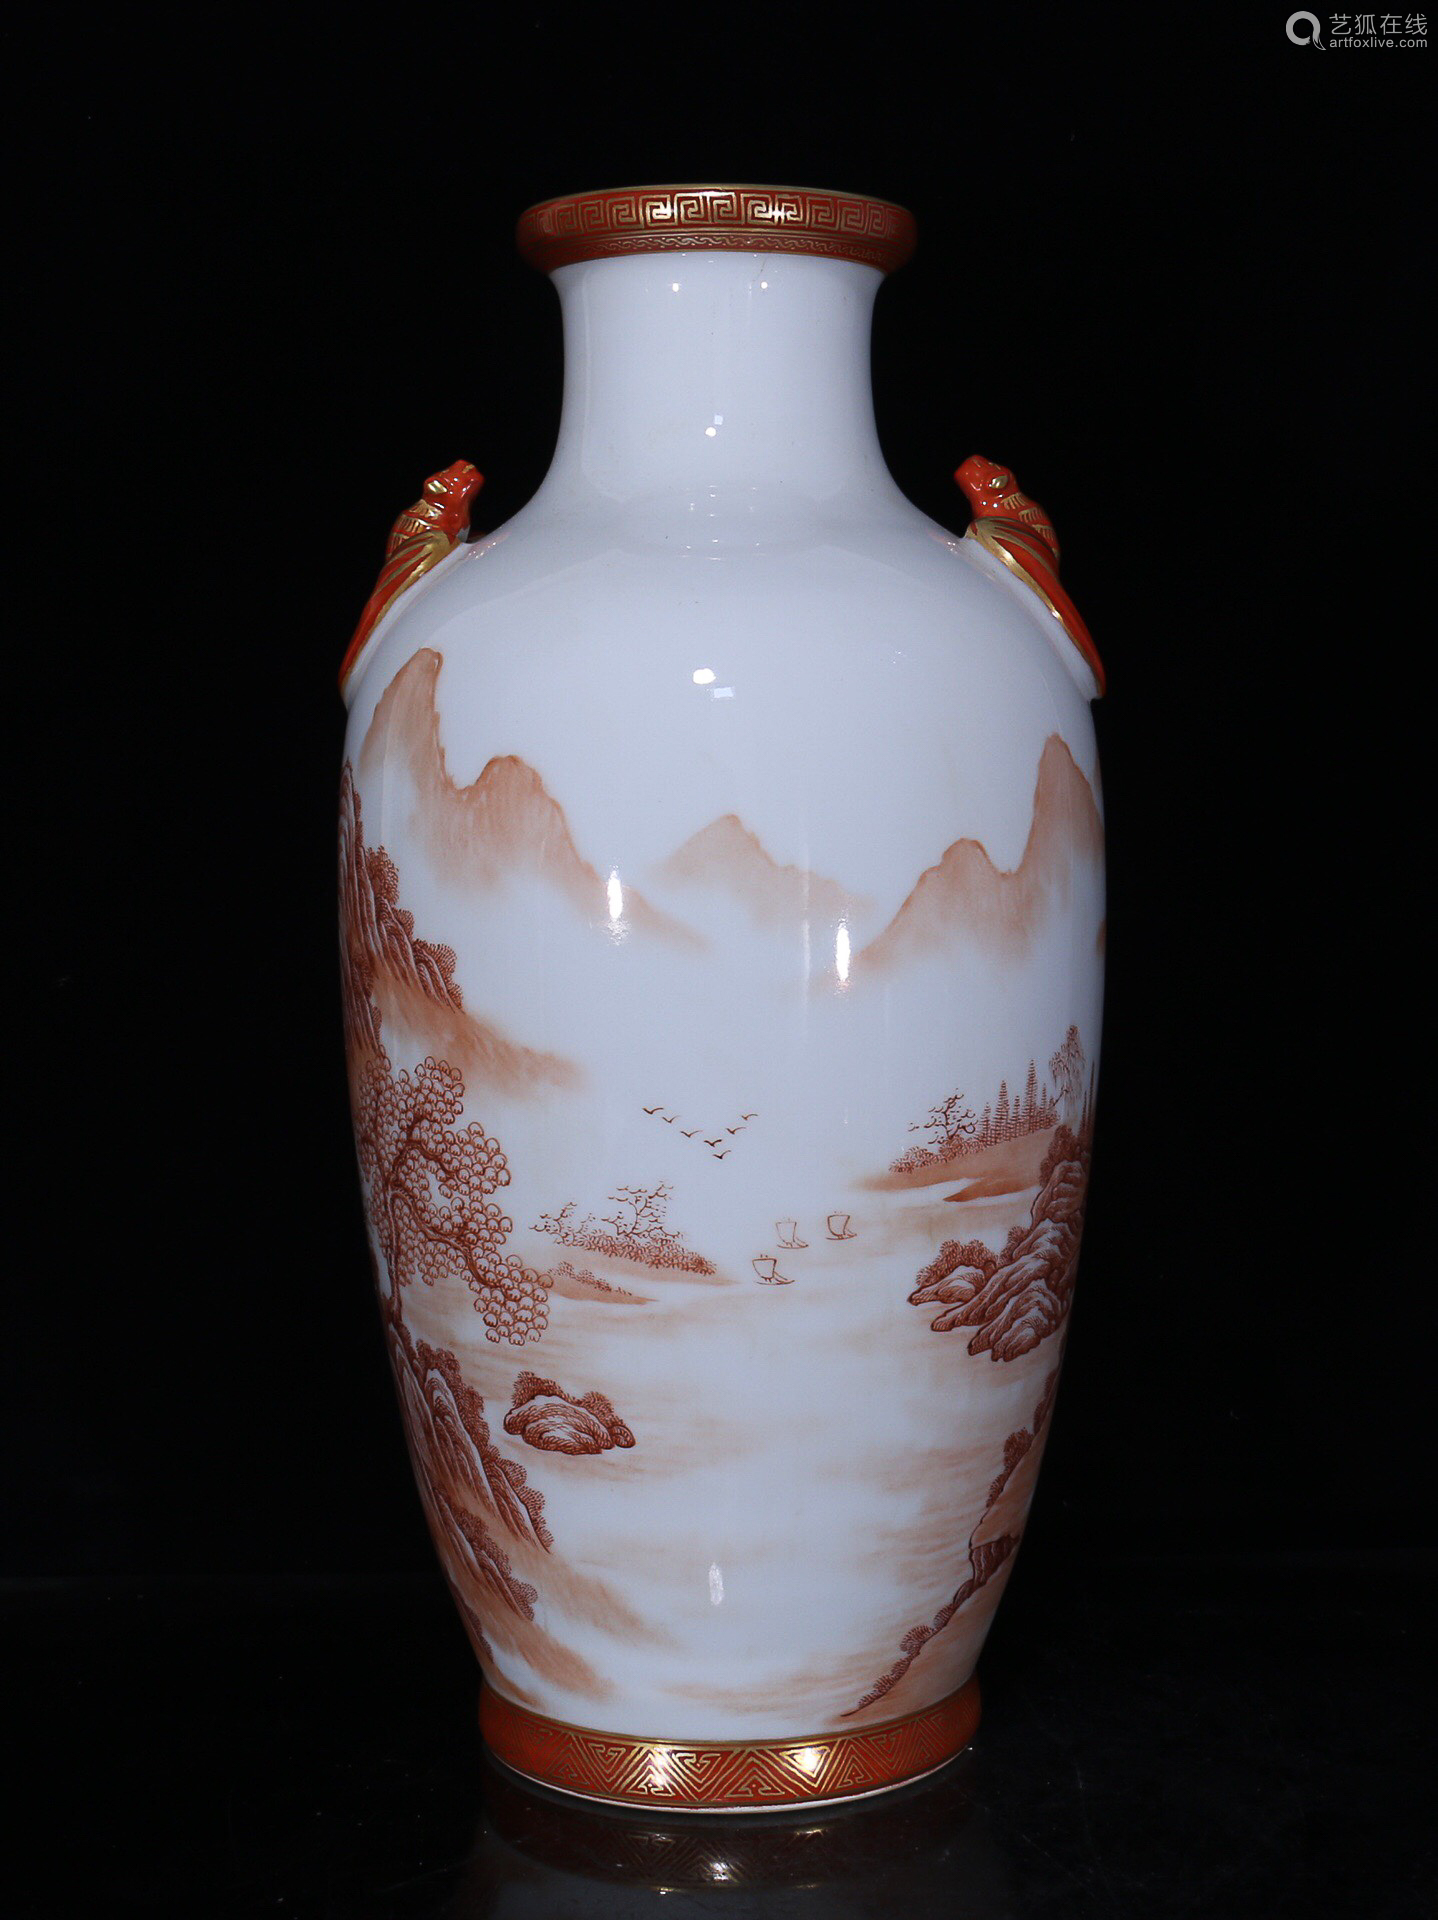 17-19TH CENTURY, A PAIR OF LANDSCAPE PATTERN DOUBLE-EAR VASES, QING DYNASTY